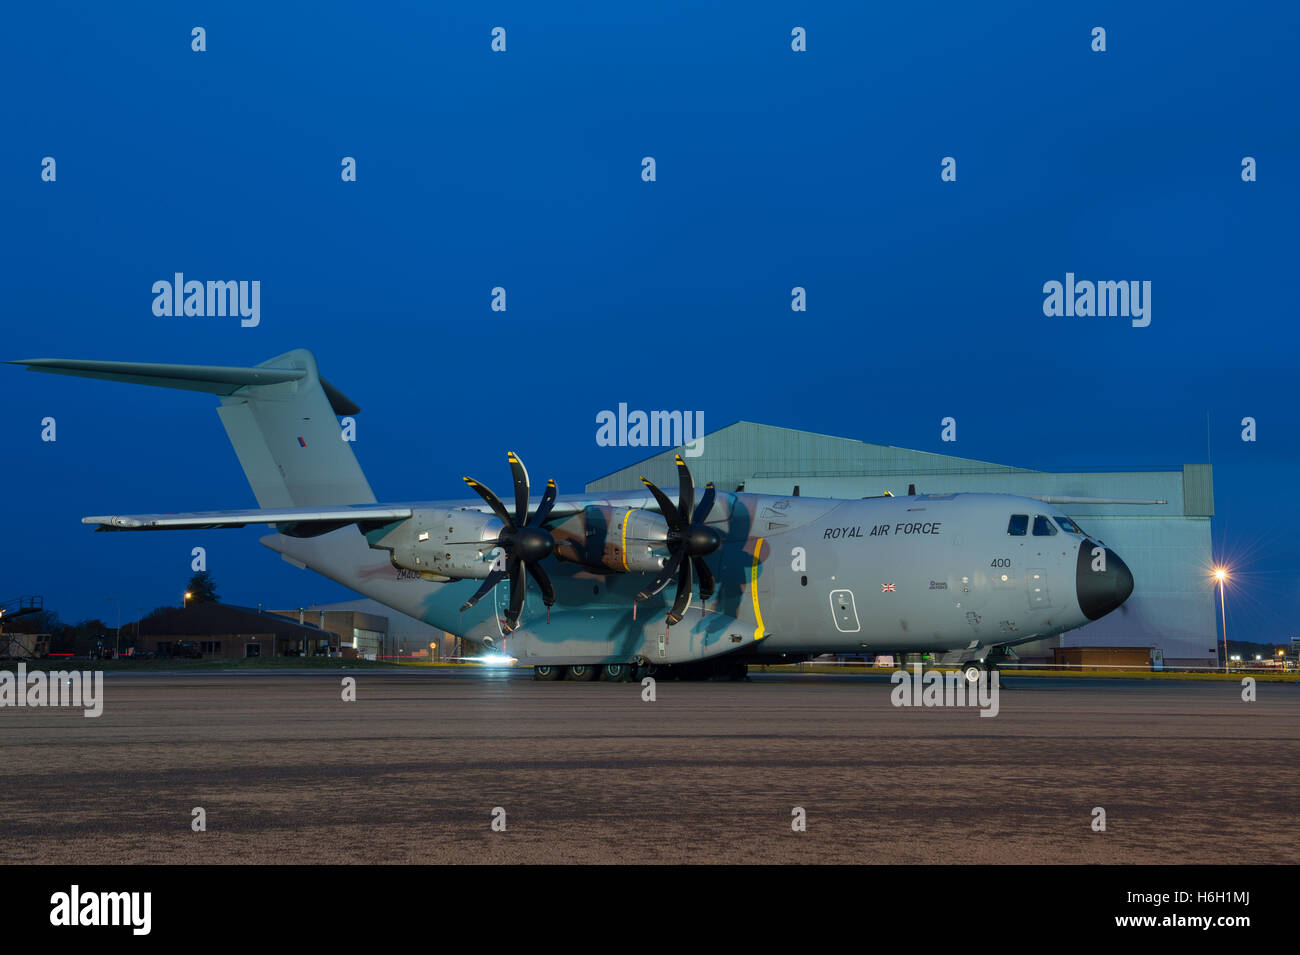 An RAF Airbus A400M Atlas at RAF Brize Norton, Oxfordshire. - Stock Image